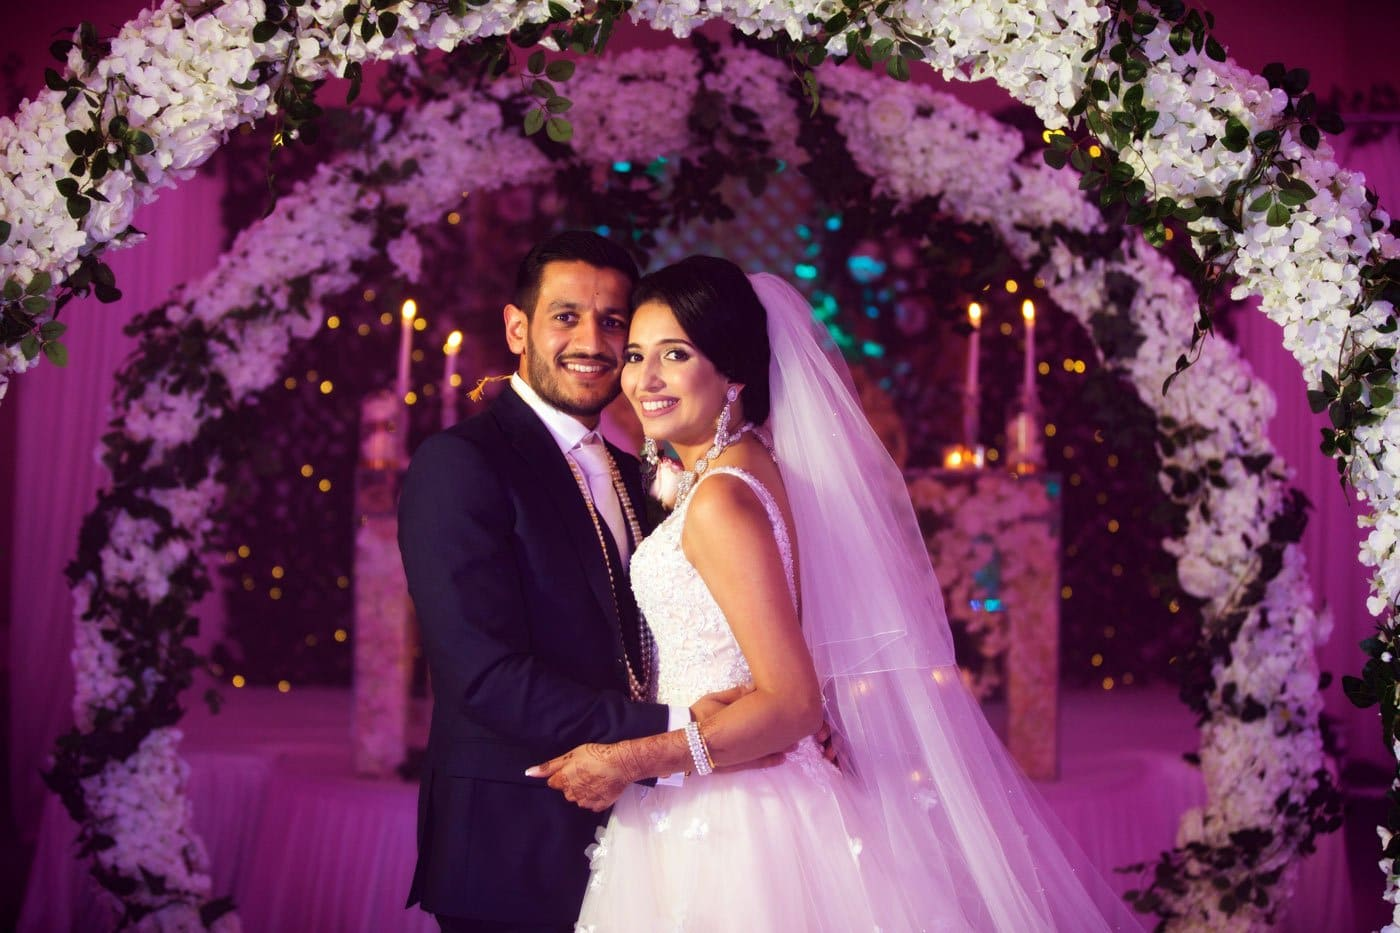 wedding-photography-and-videography-at-Manor-Grove-__-Viney-&-Sundeep